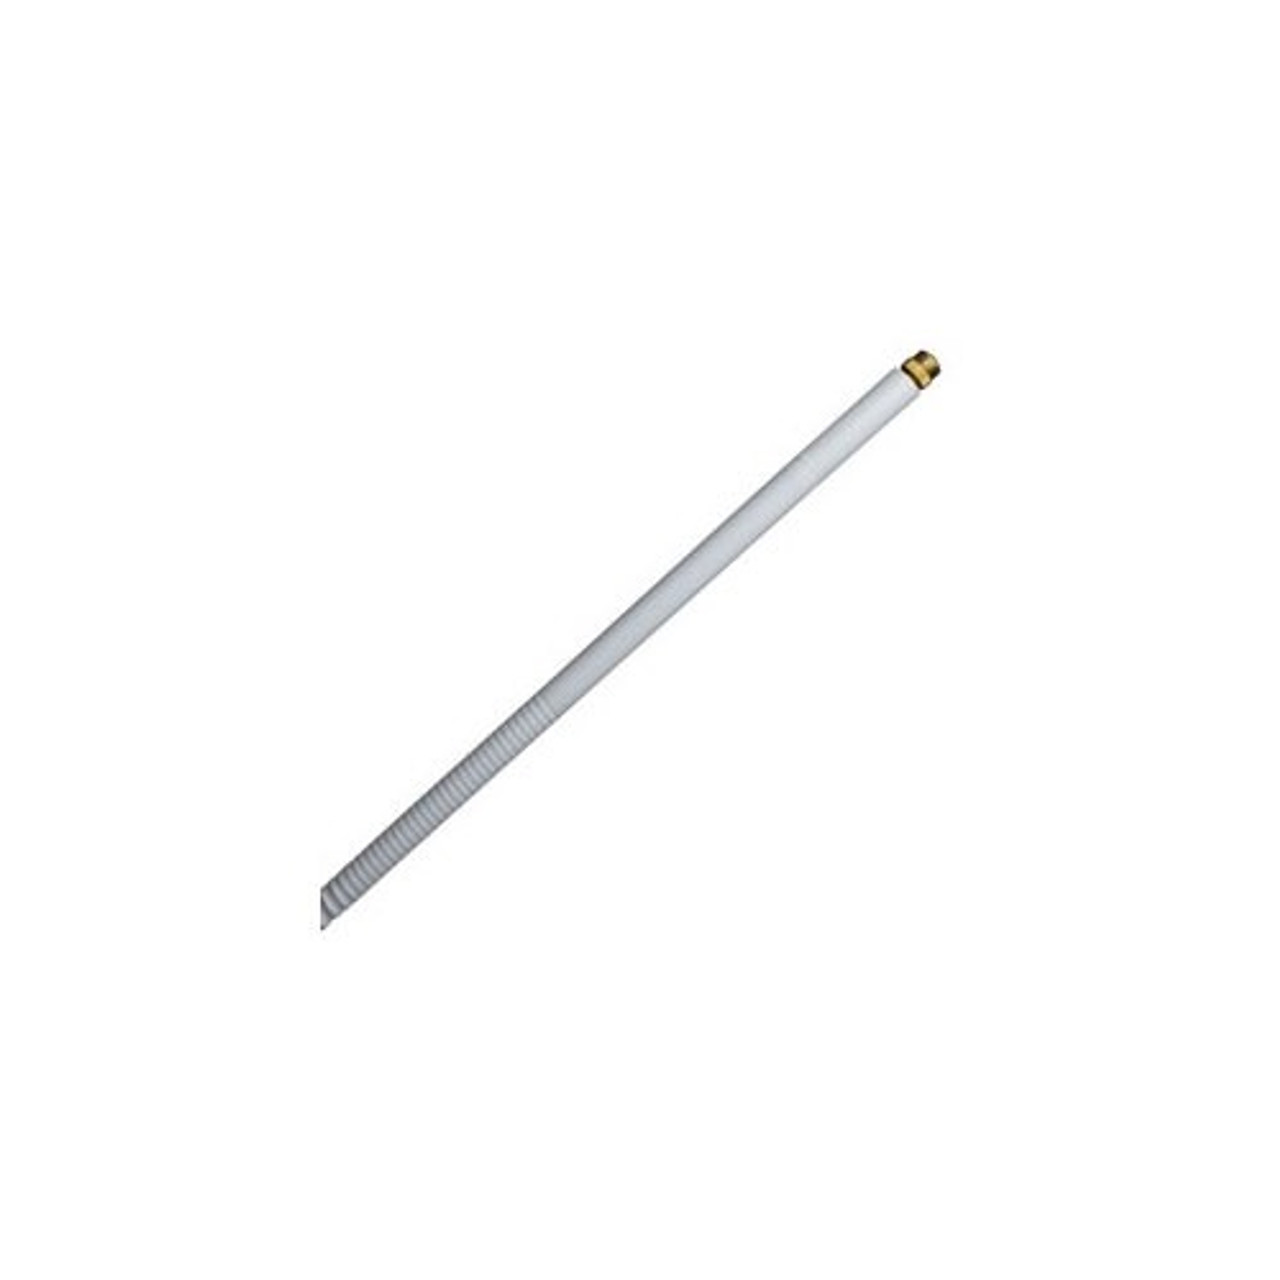 4 Foot Firestik II FS Series Tunable Tip CB Antenna - White